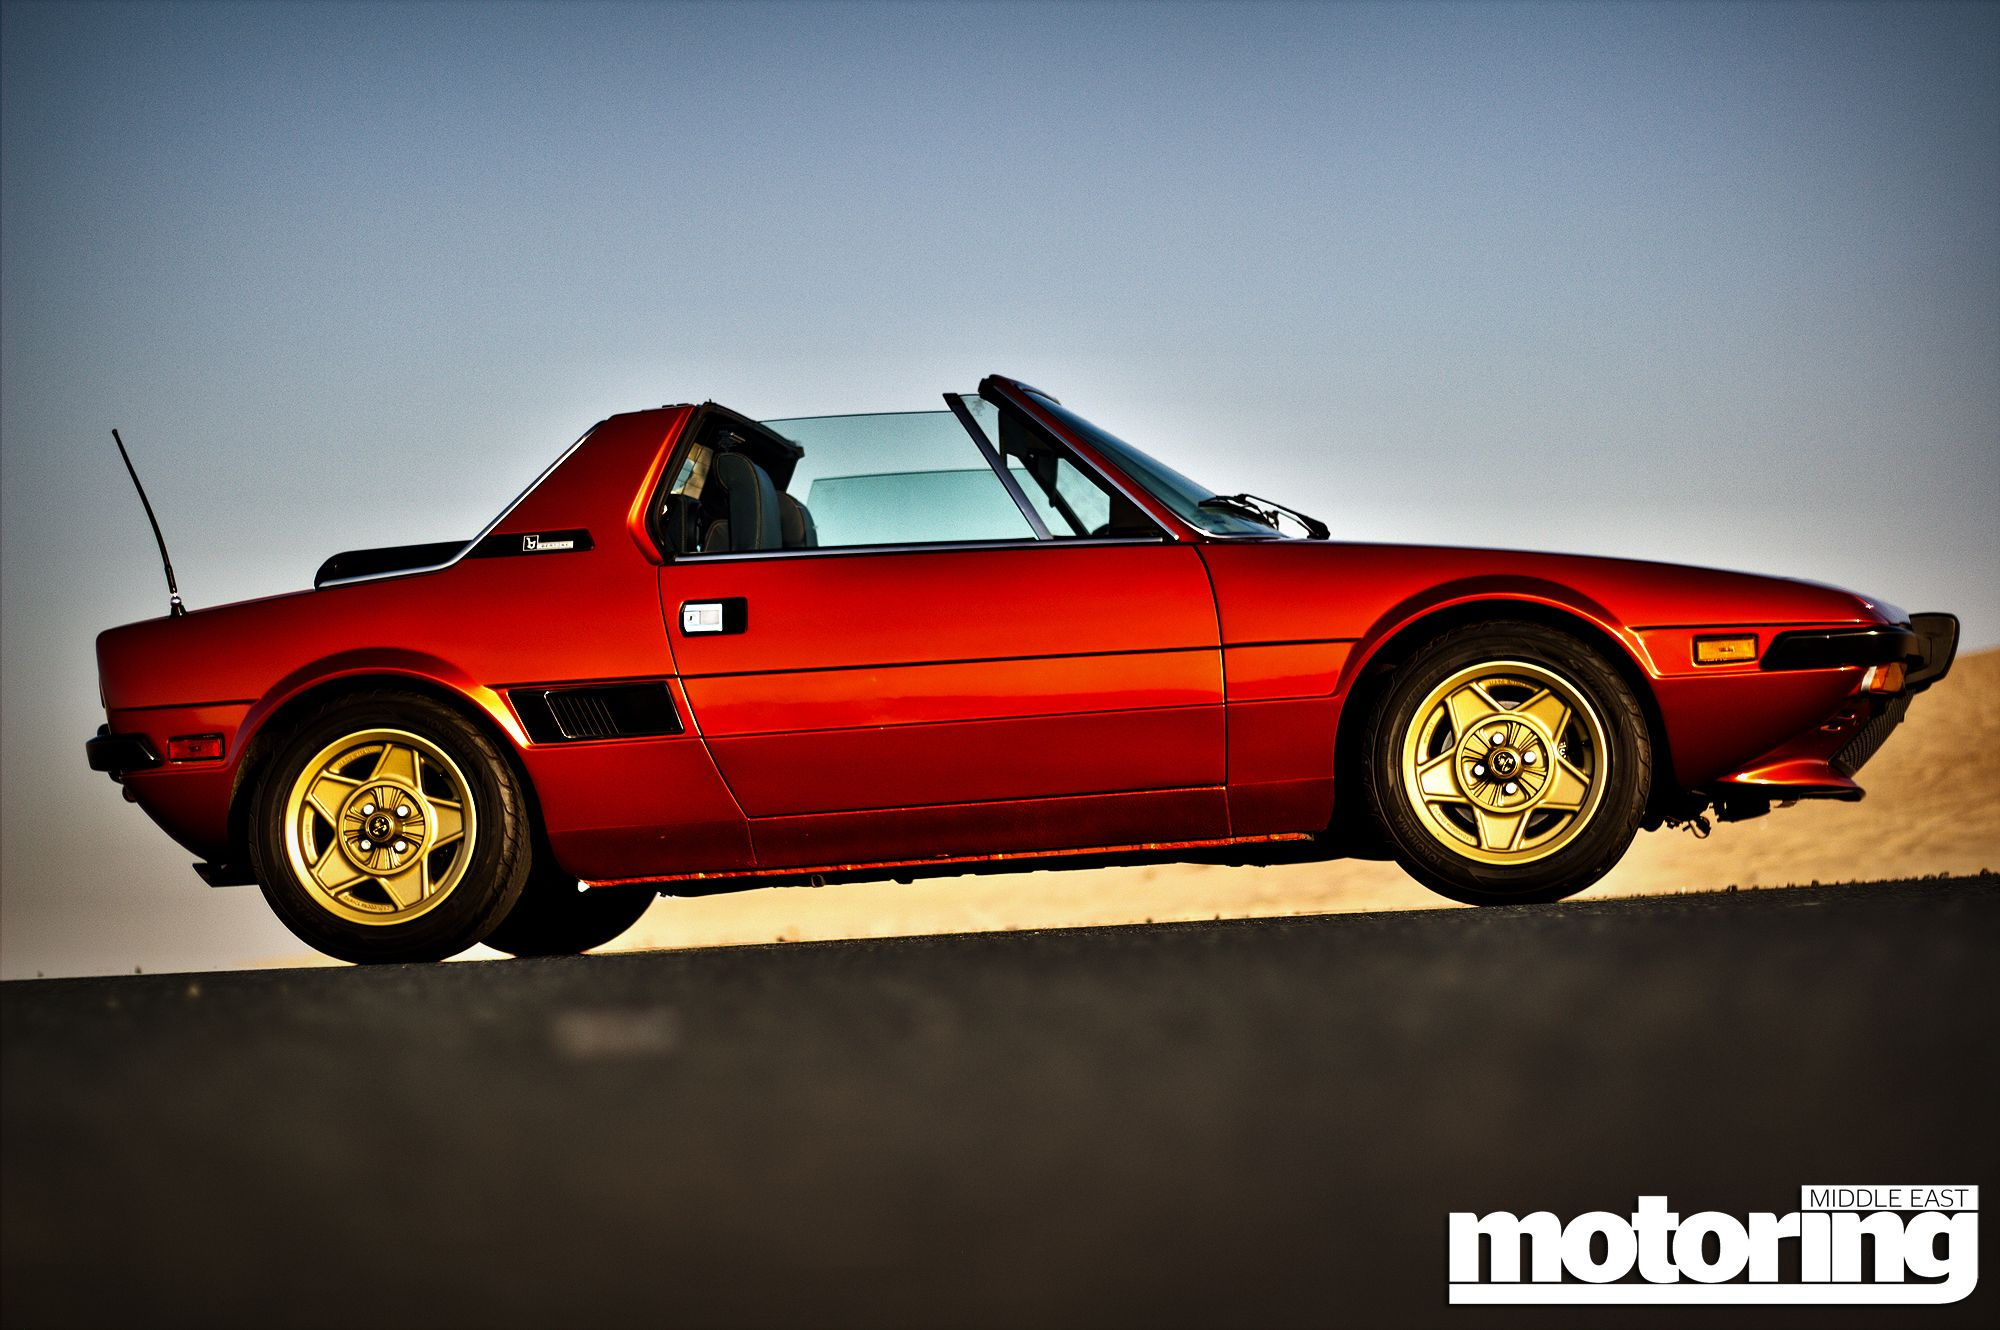 medium resolution of classic fiat x1 9 in dubai